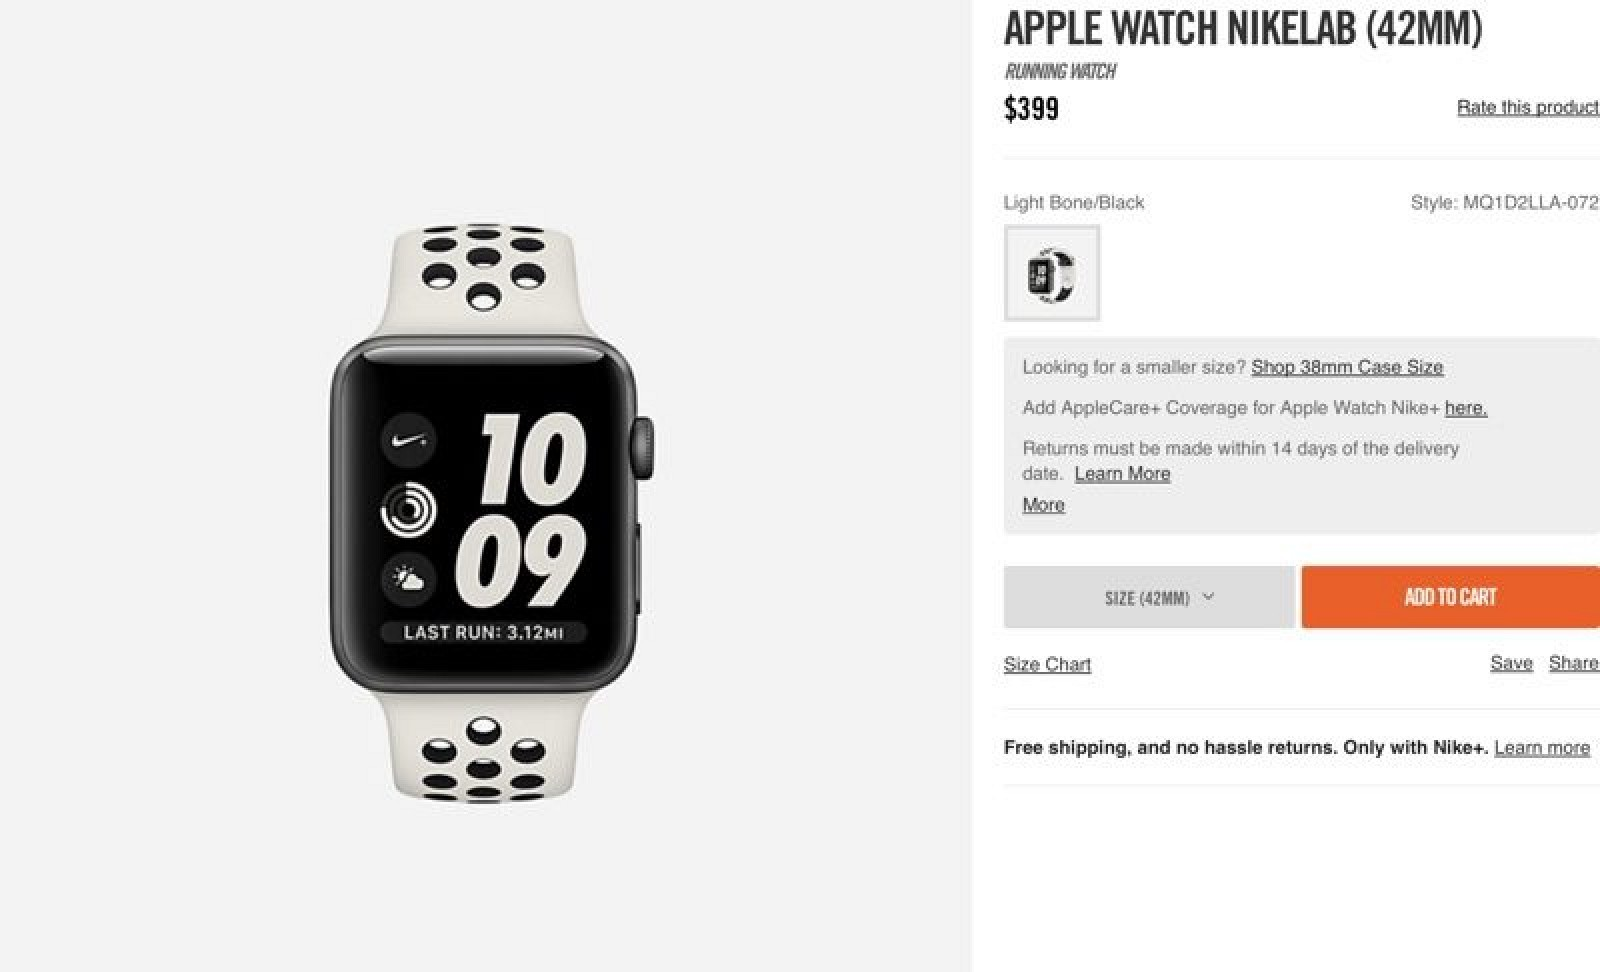 New Apple Watch NikeLab Now Available for Purchase